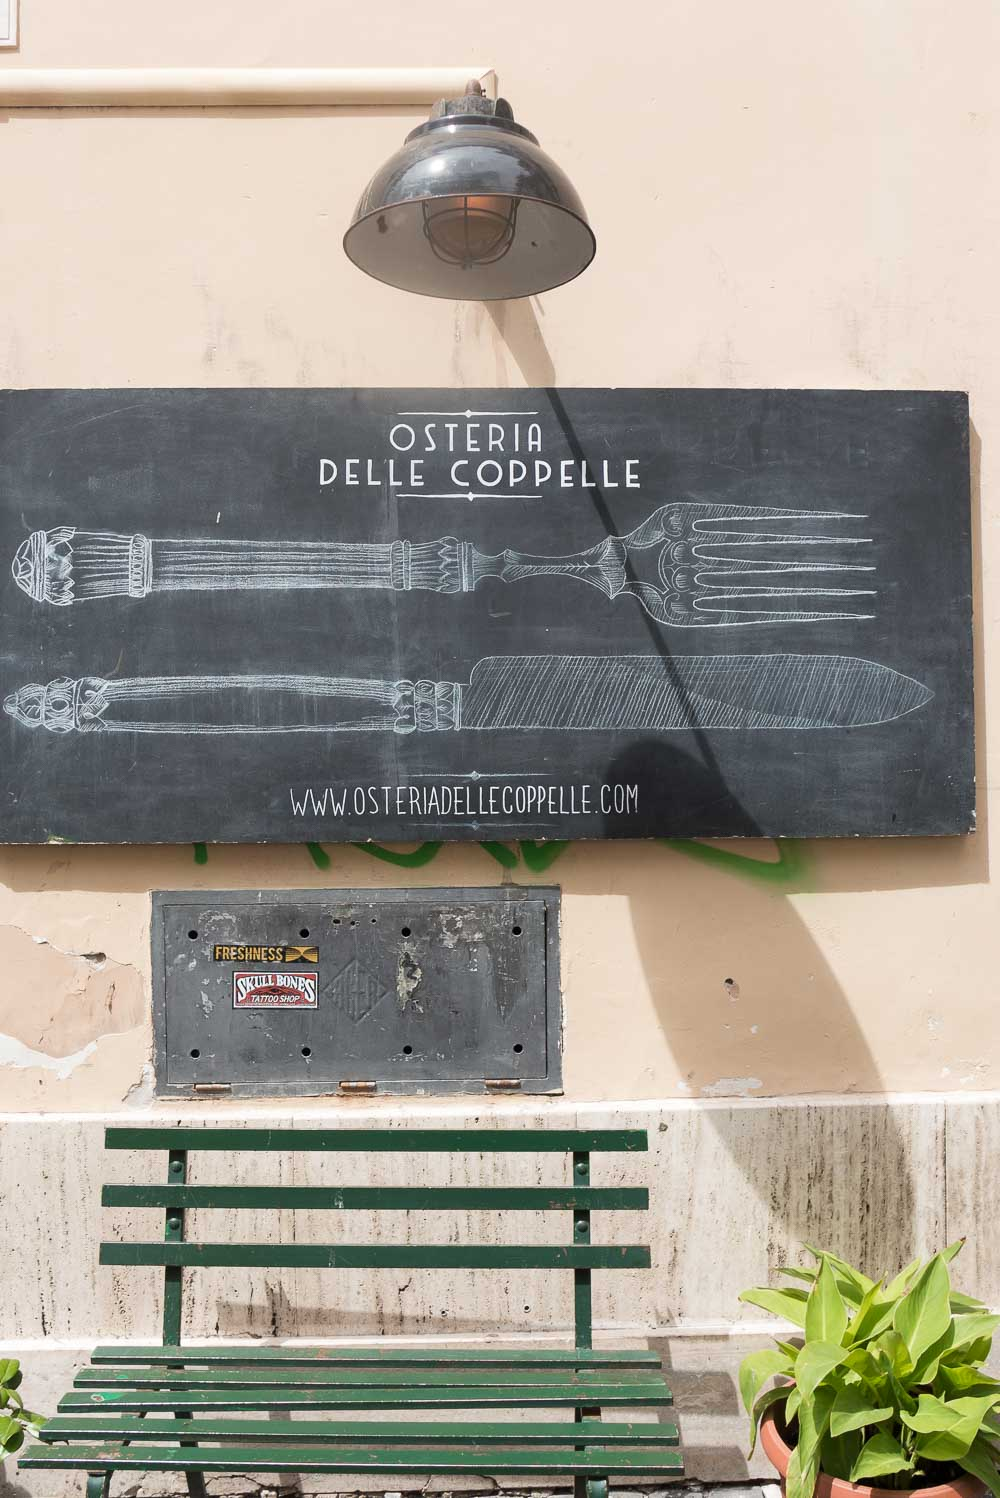 Restaurants in Rome: open in augustus - Osteria delle Coppelle